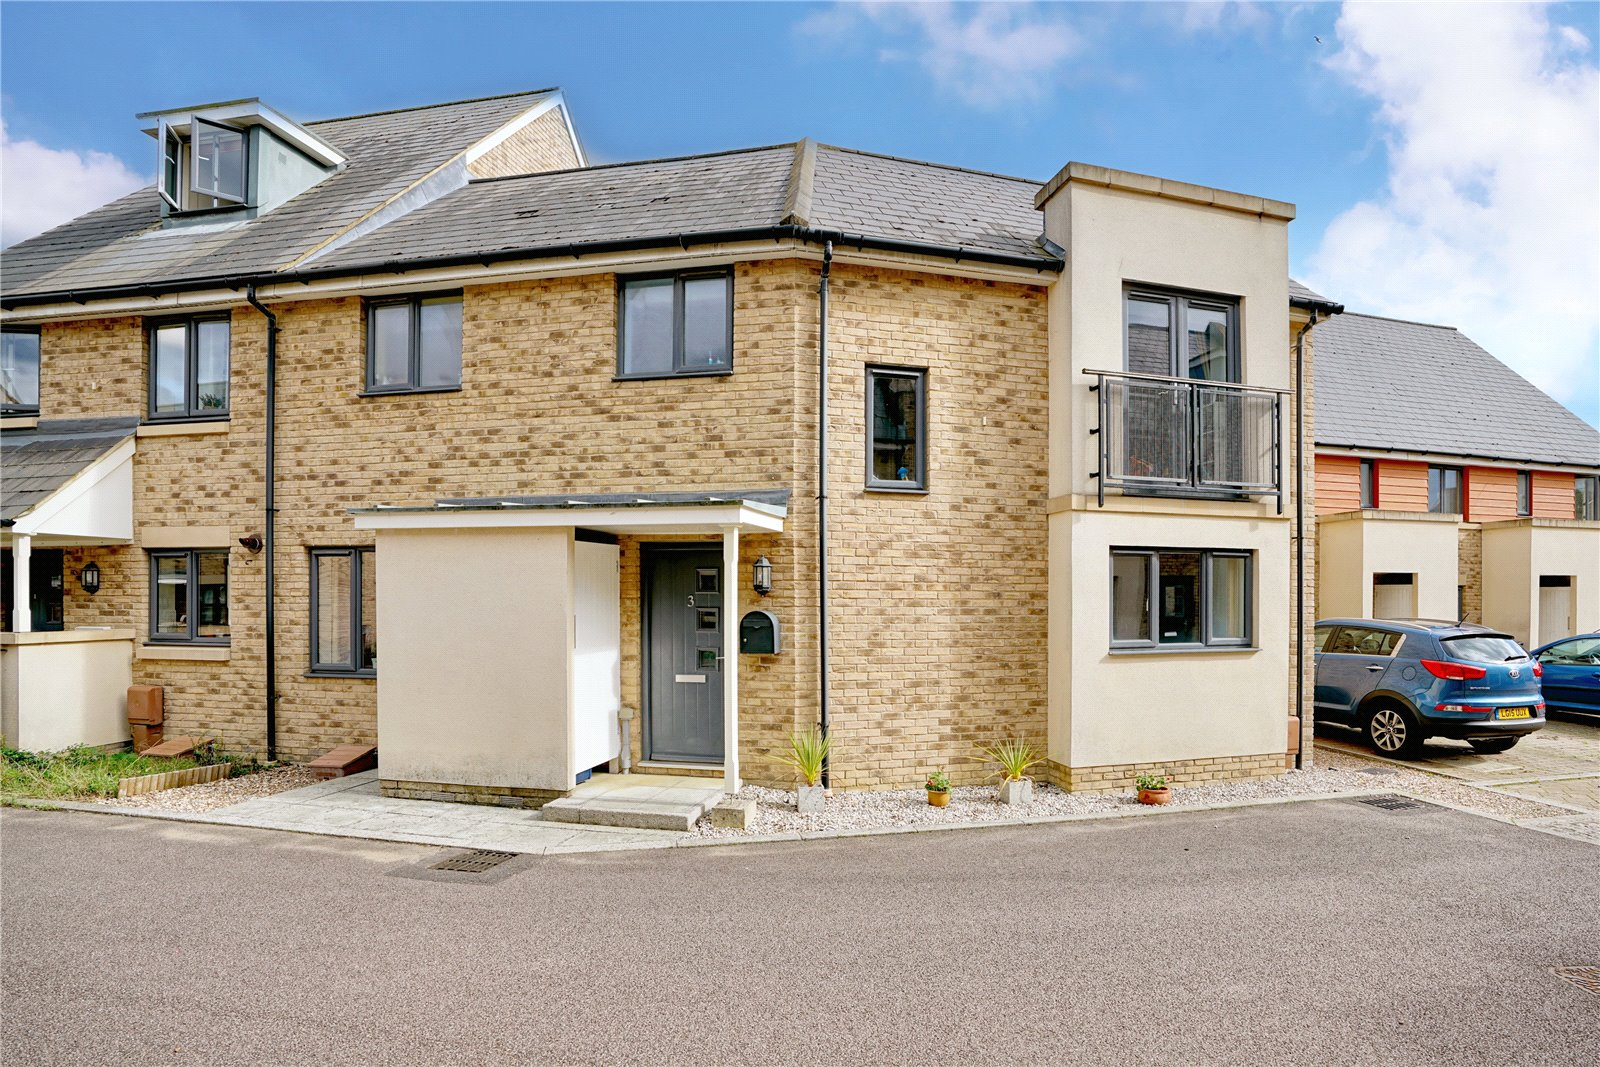 3 bed house for sale in St. Neots, PE19 6AT, PE19